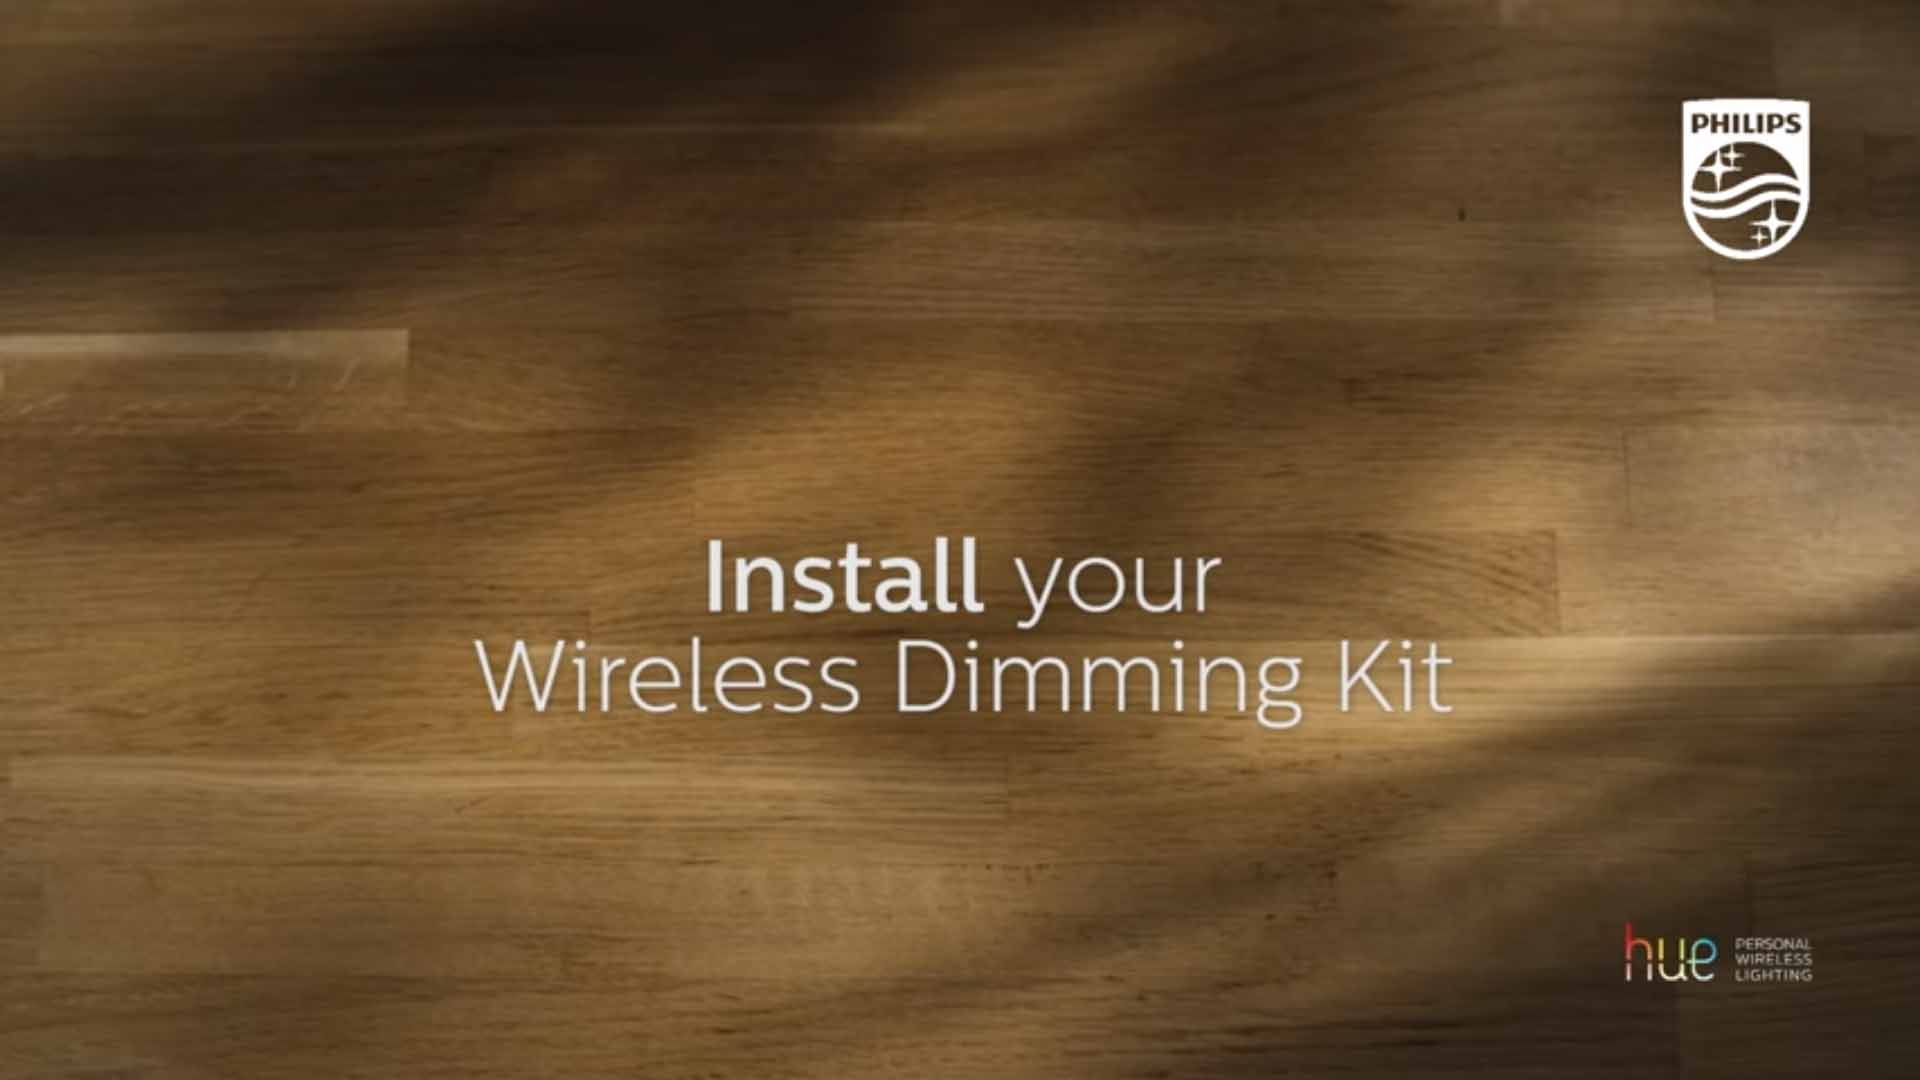 Philips Hue how to install wireless dimmer kit video